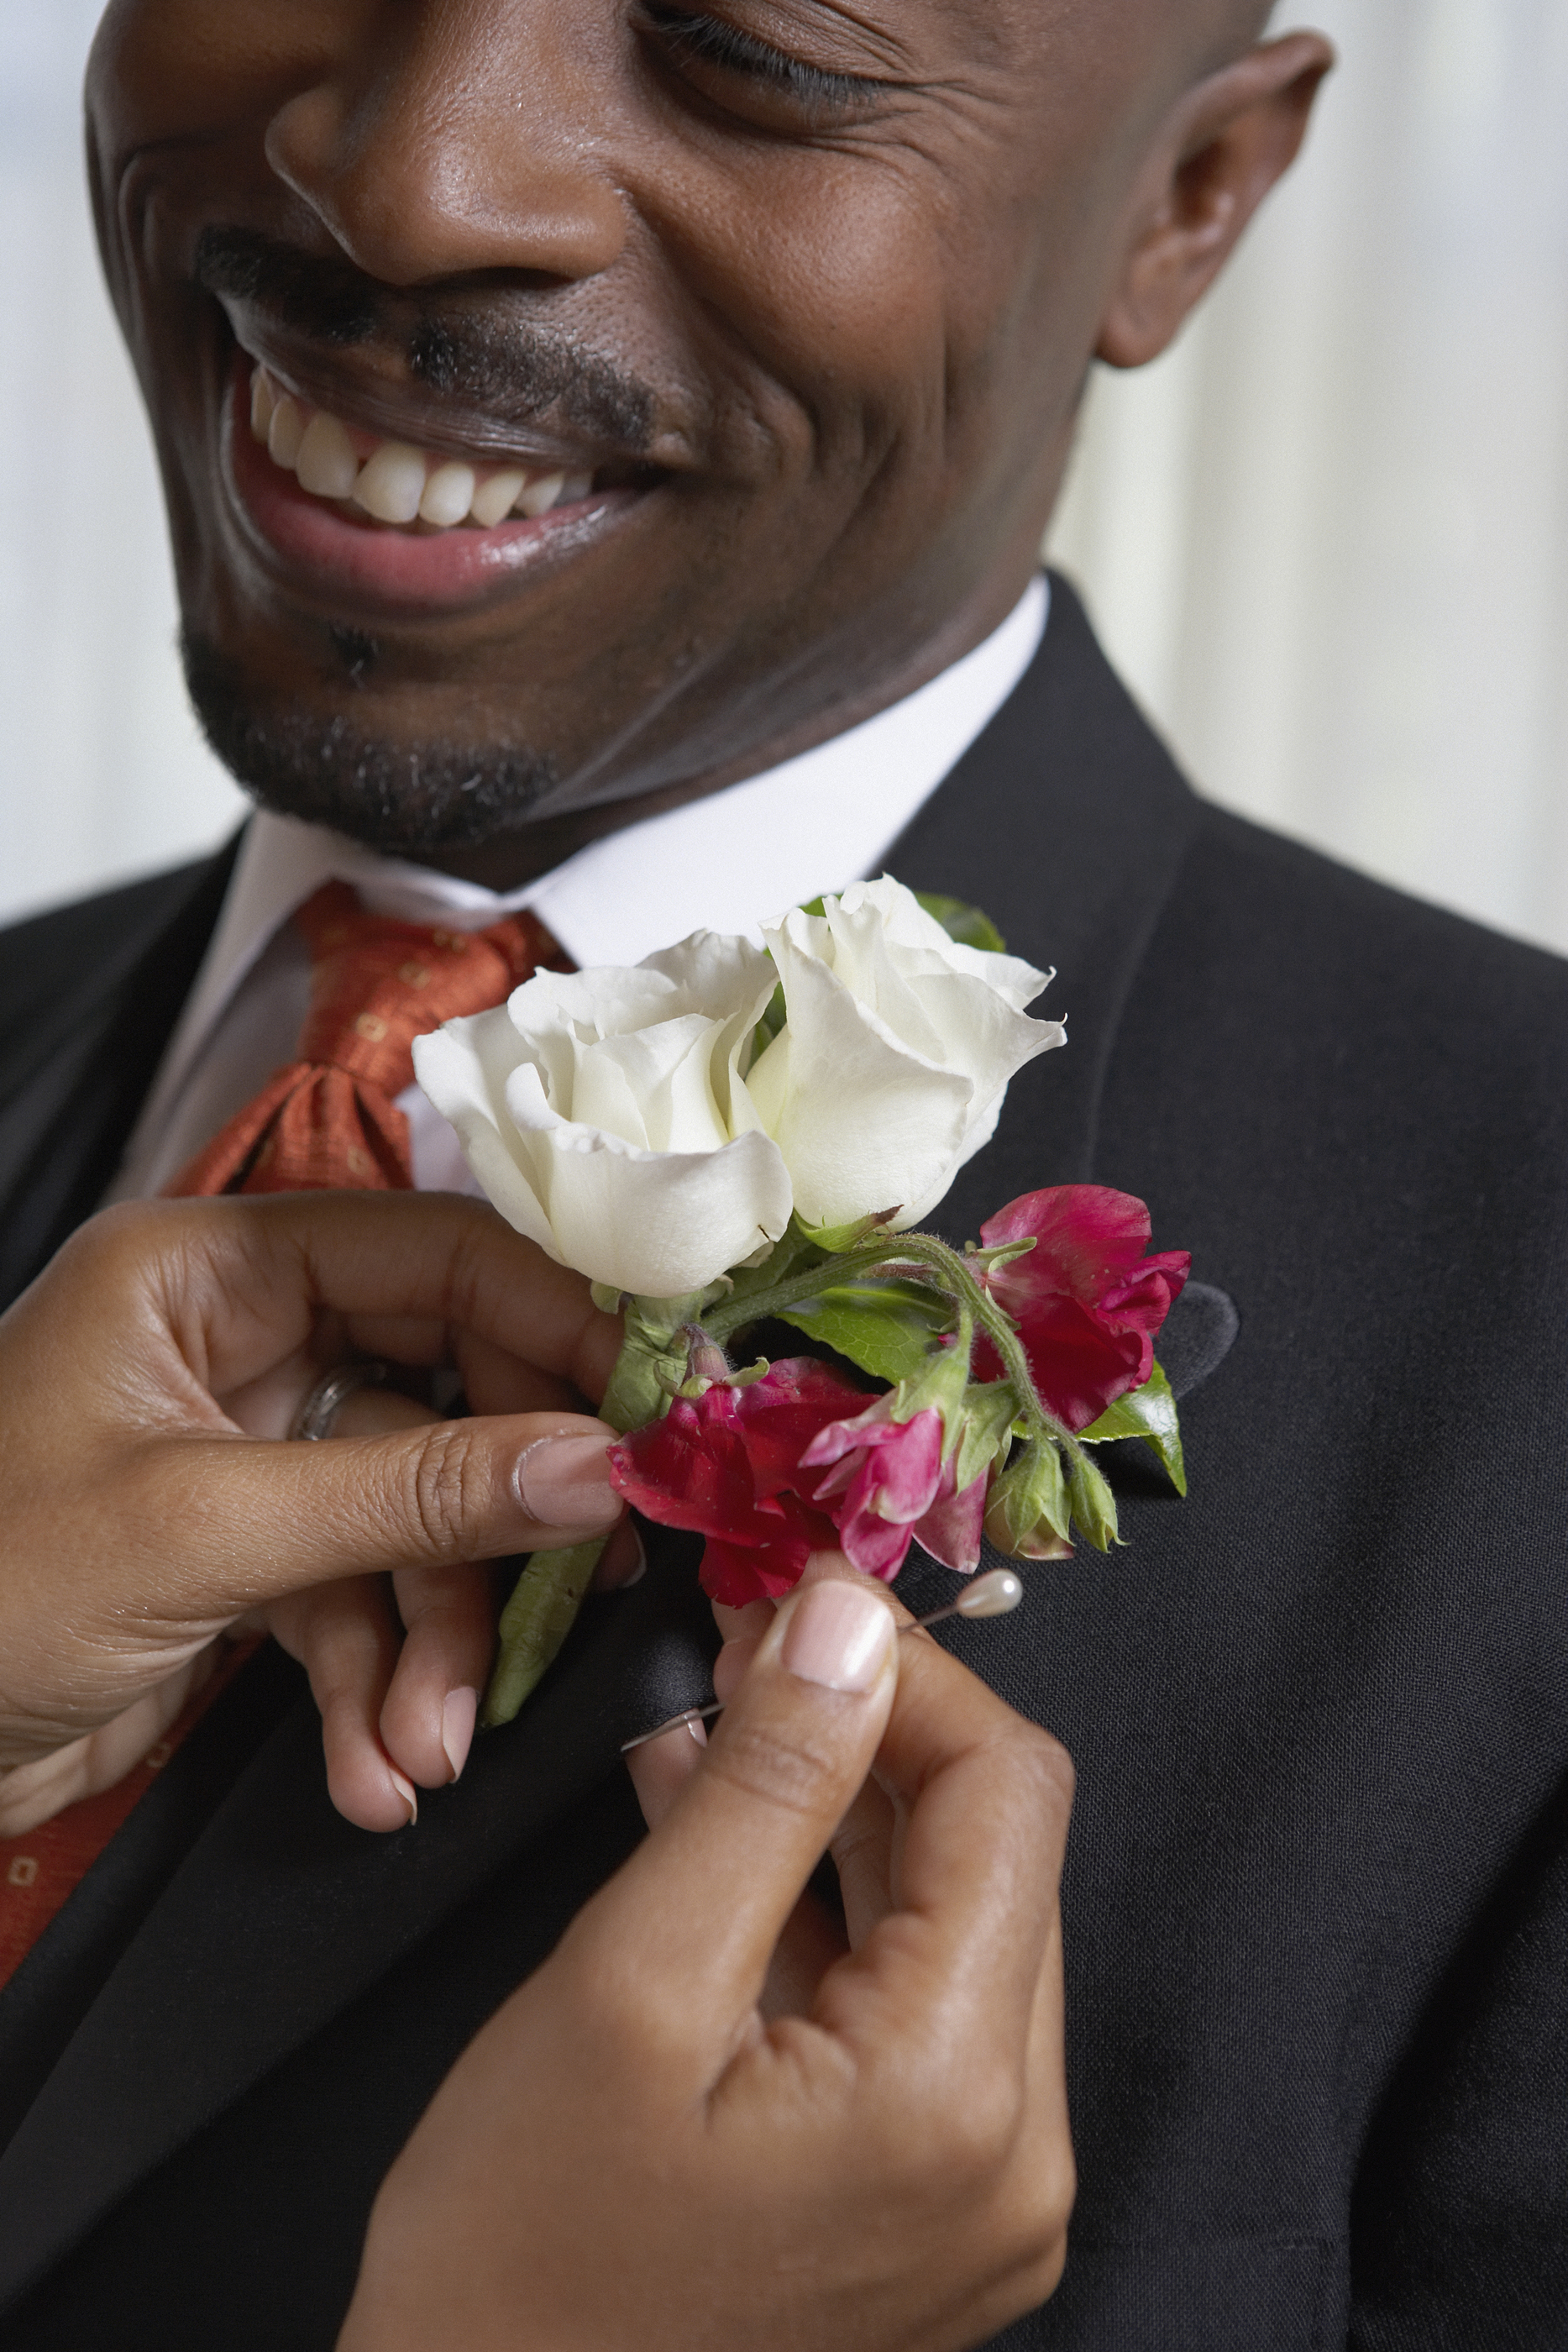 Woman pinning flowers onto man's lapel